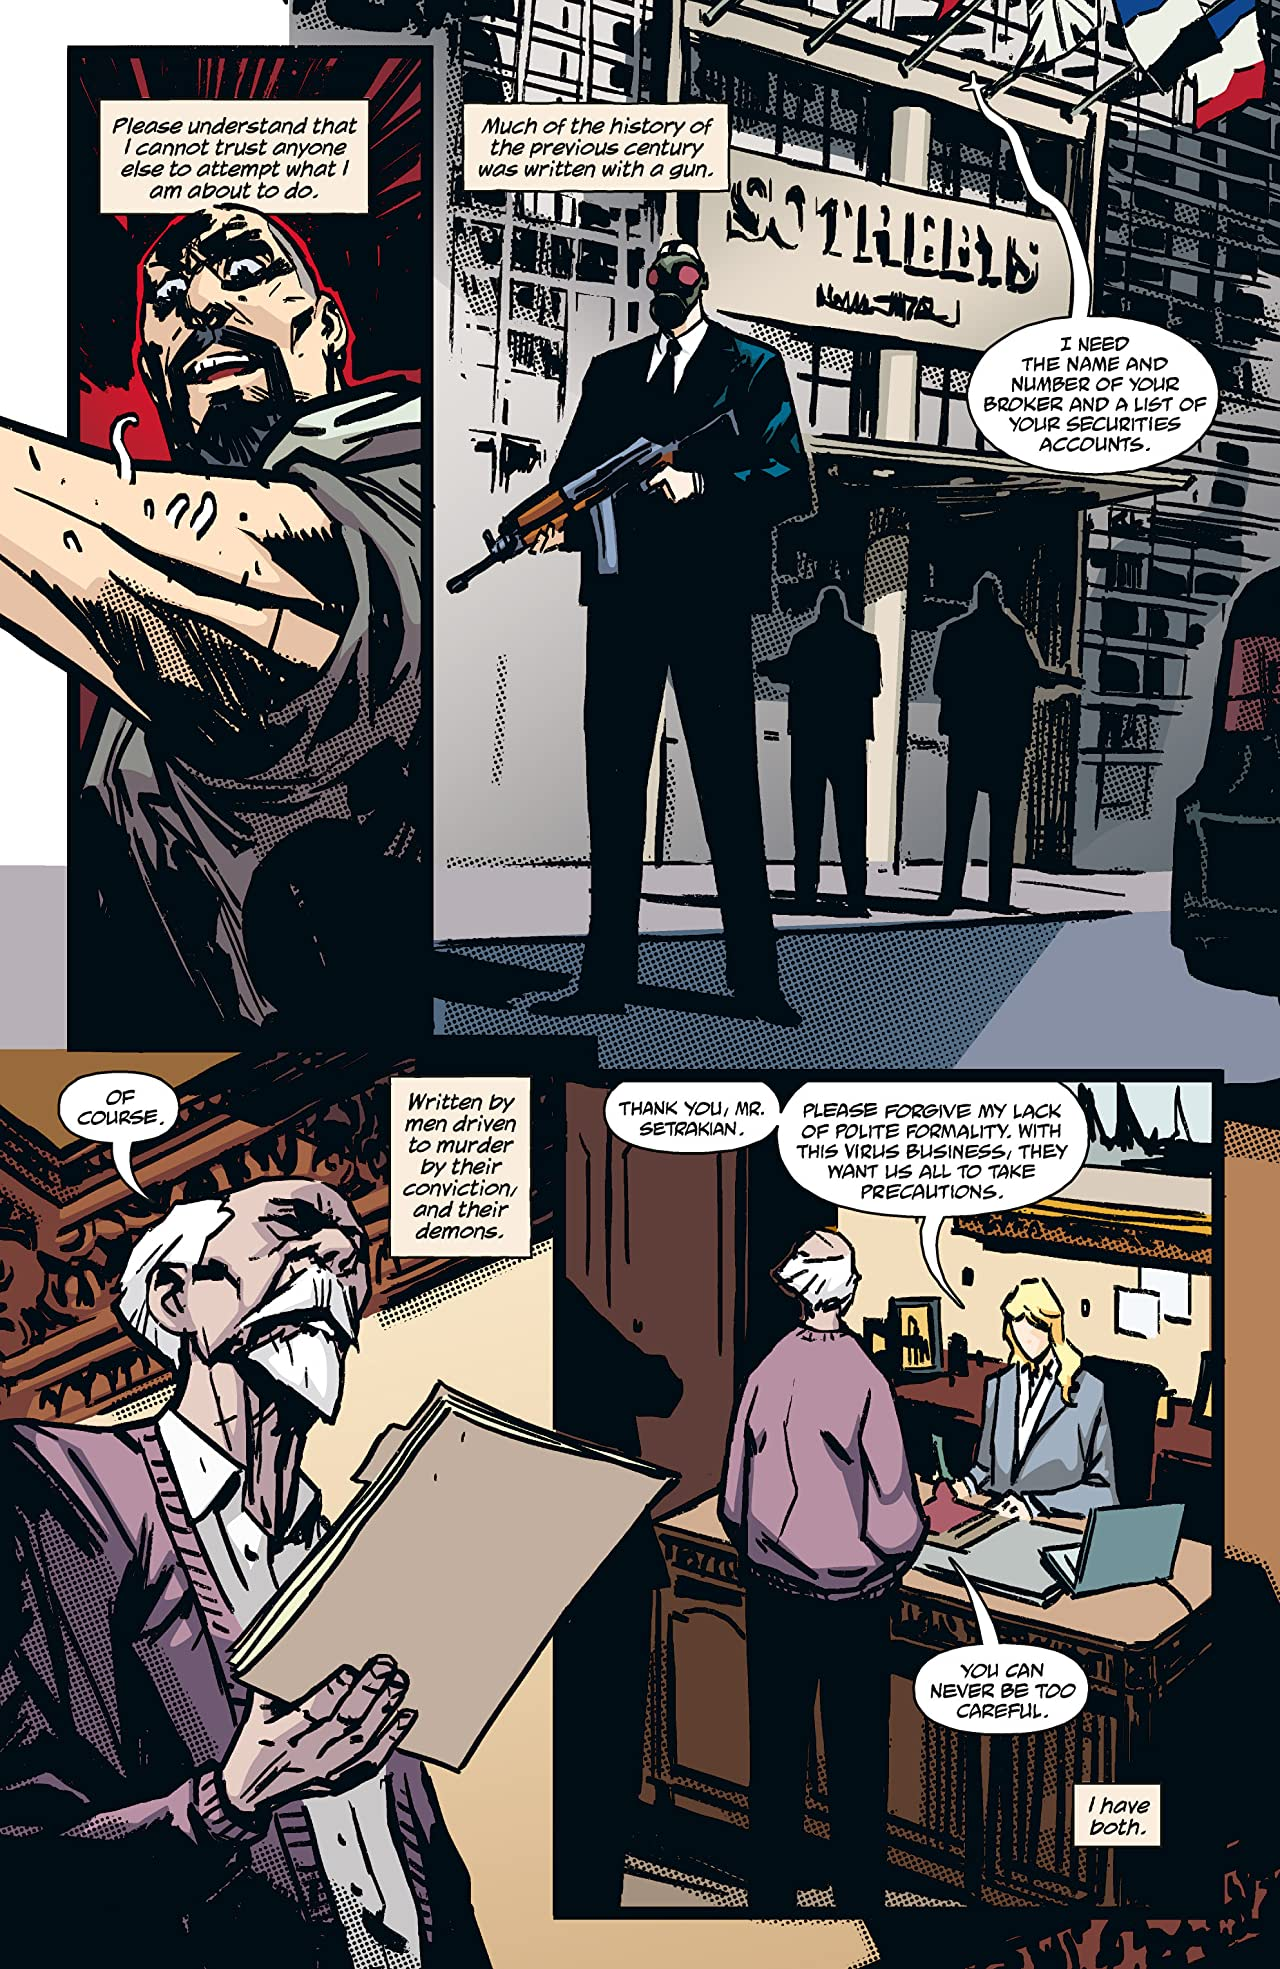 The Strain: The Fall #5